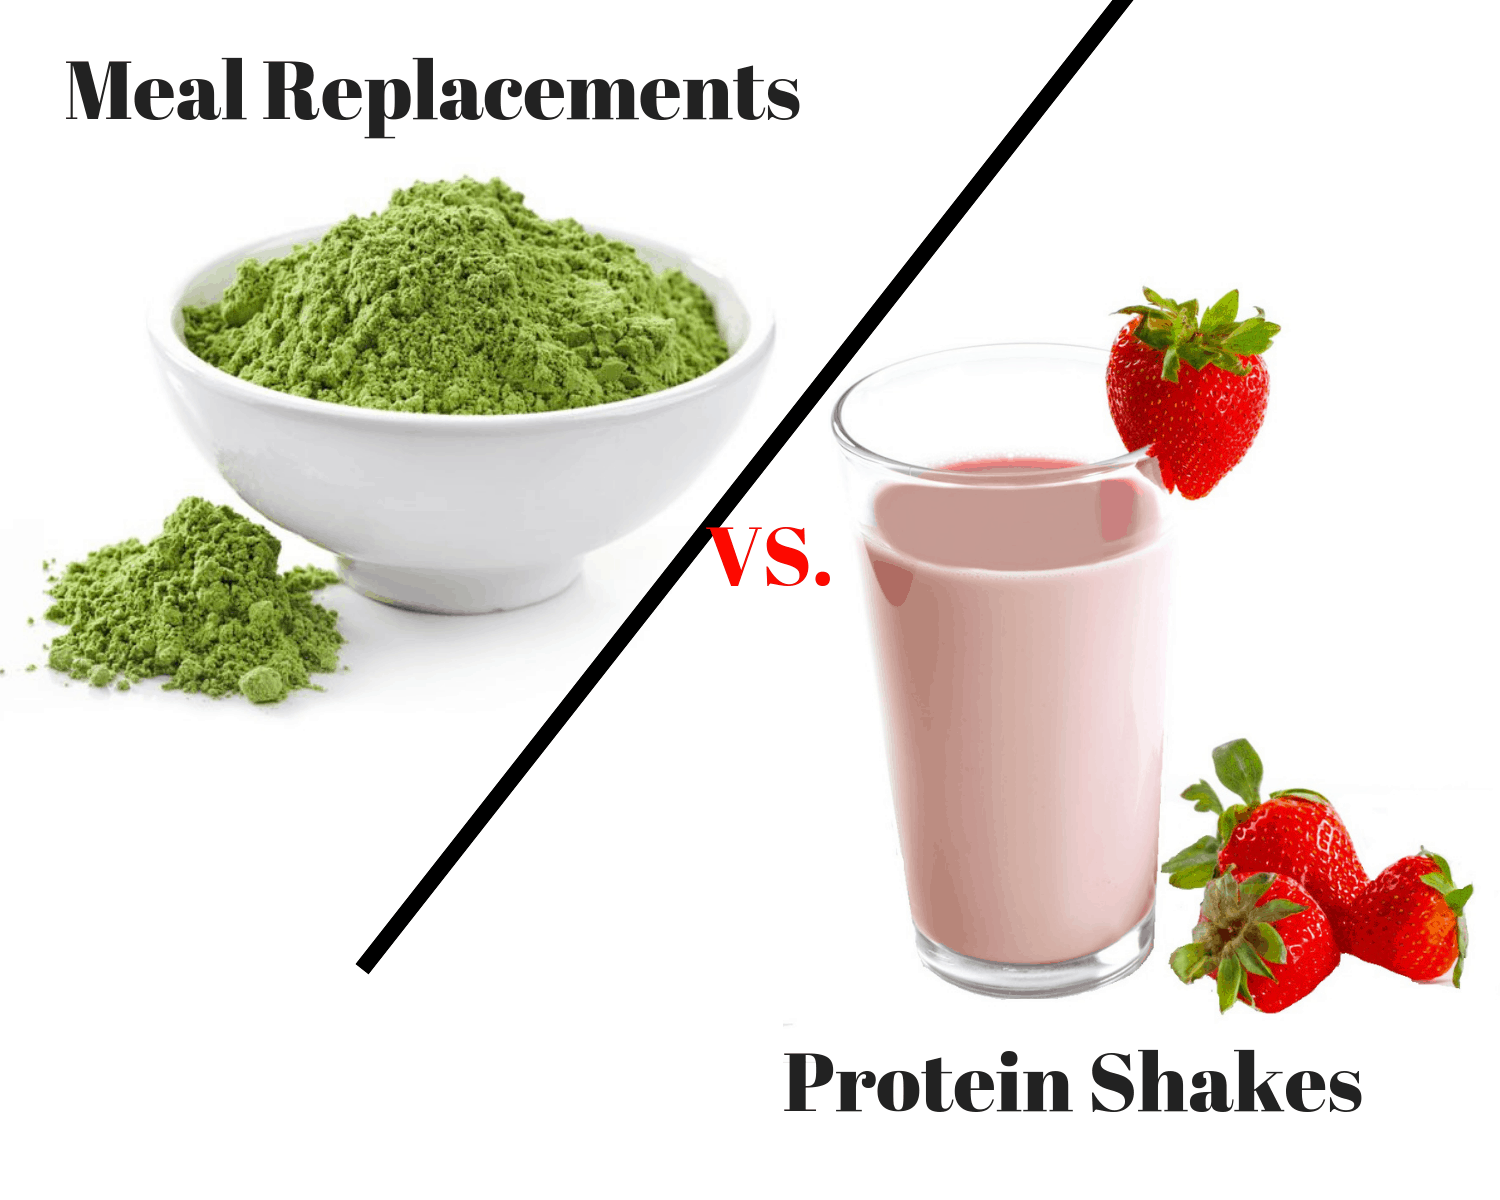 Meal Replacement vs Protein Shakes - What Is The Difference?